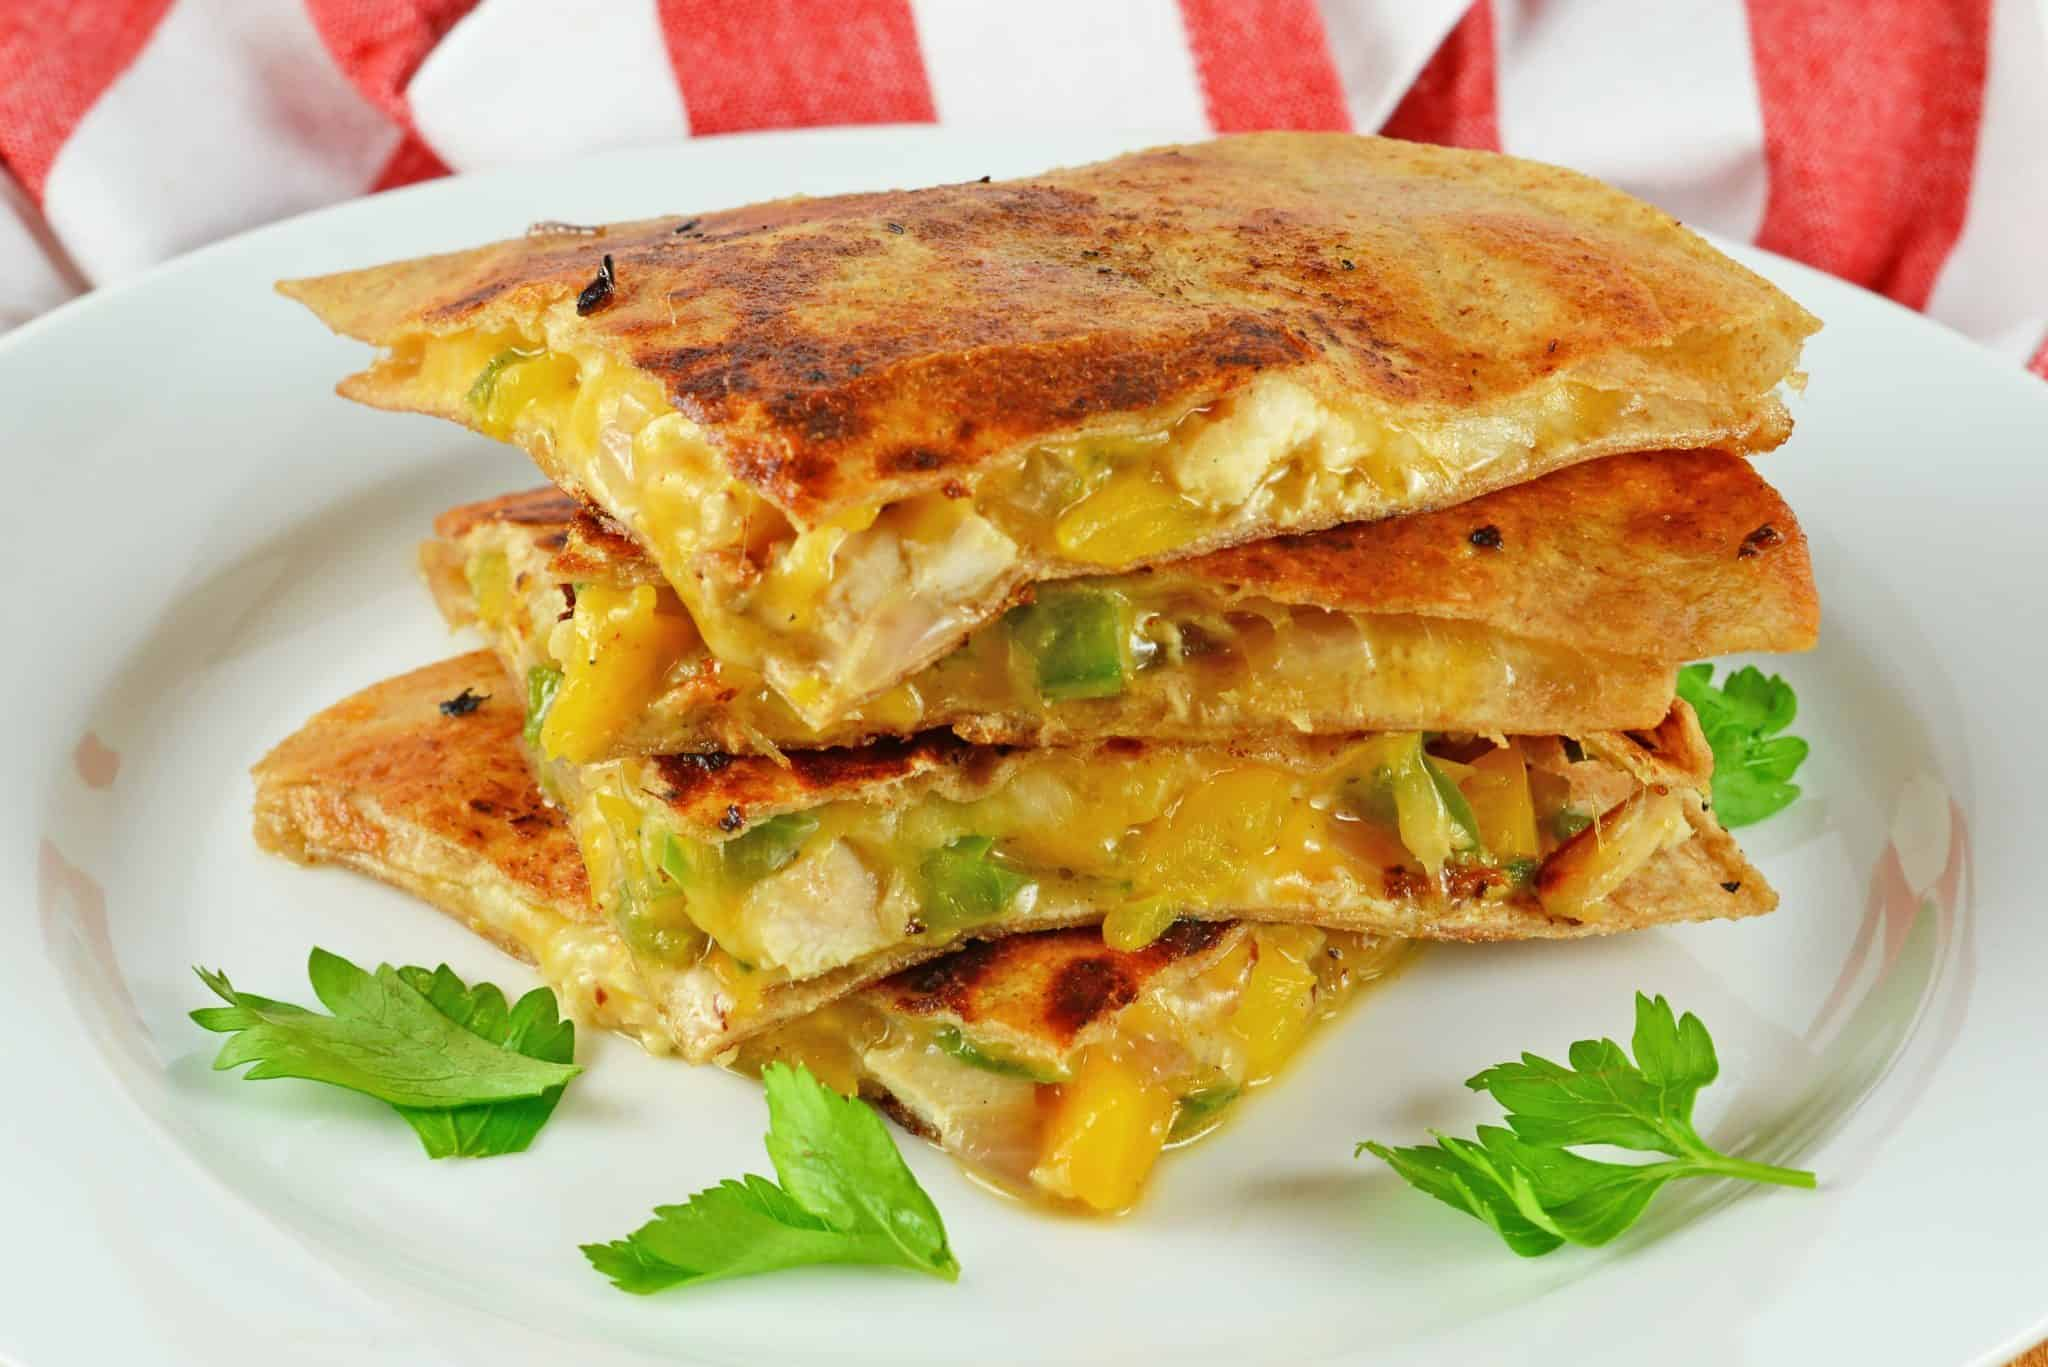 Easy chicken quesadillas recipe with crispy tortillas, chopped vegetables and lots of cheese! Come see my tips and tricks making this recipe THE BEST!